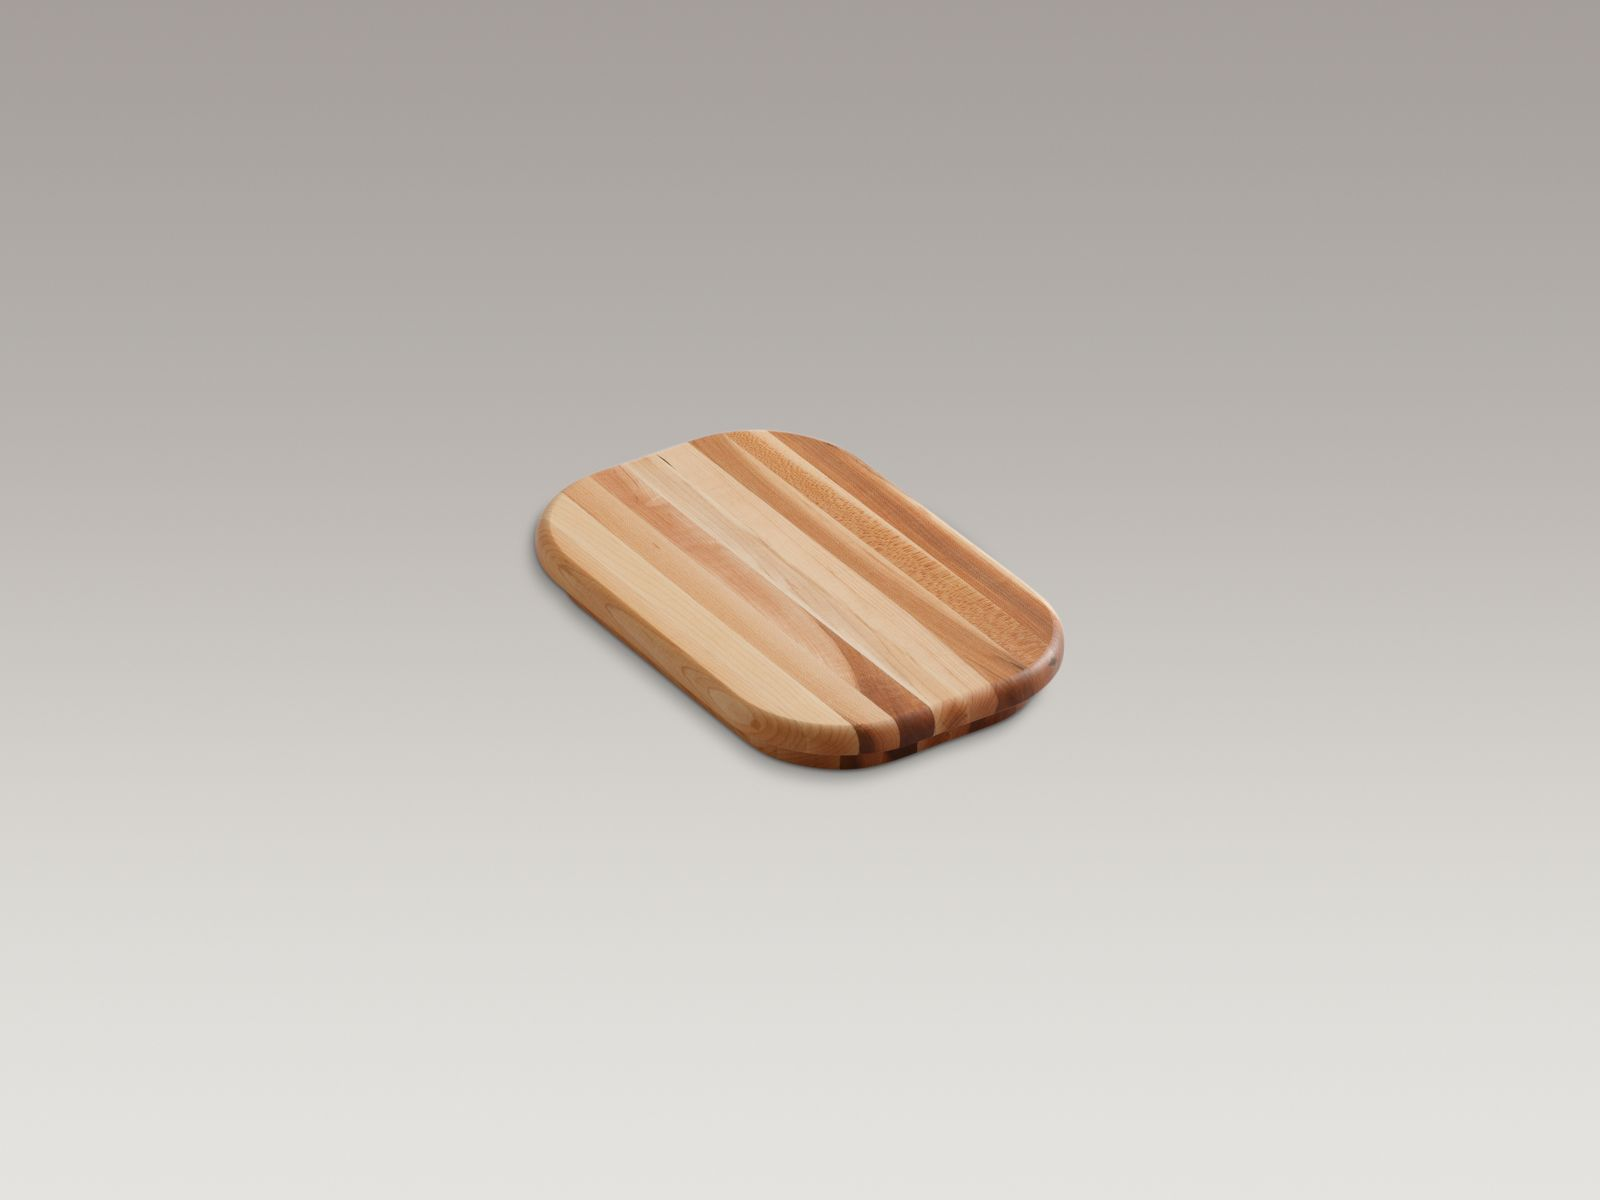 Kohler K-3365-NA Staccato Large or Medium Sink Hardwood Cutting Board